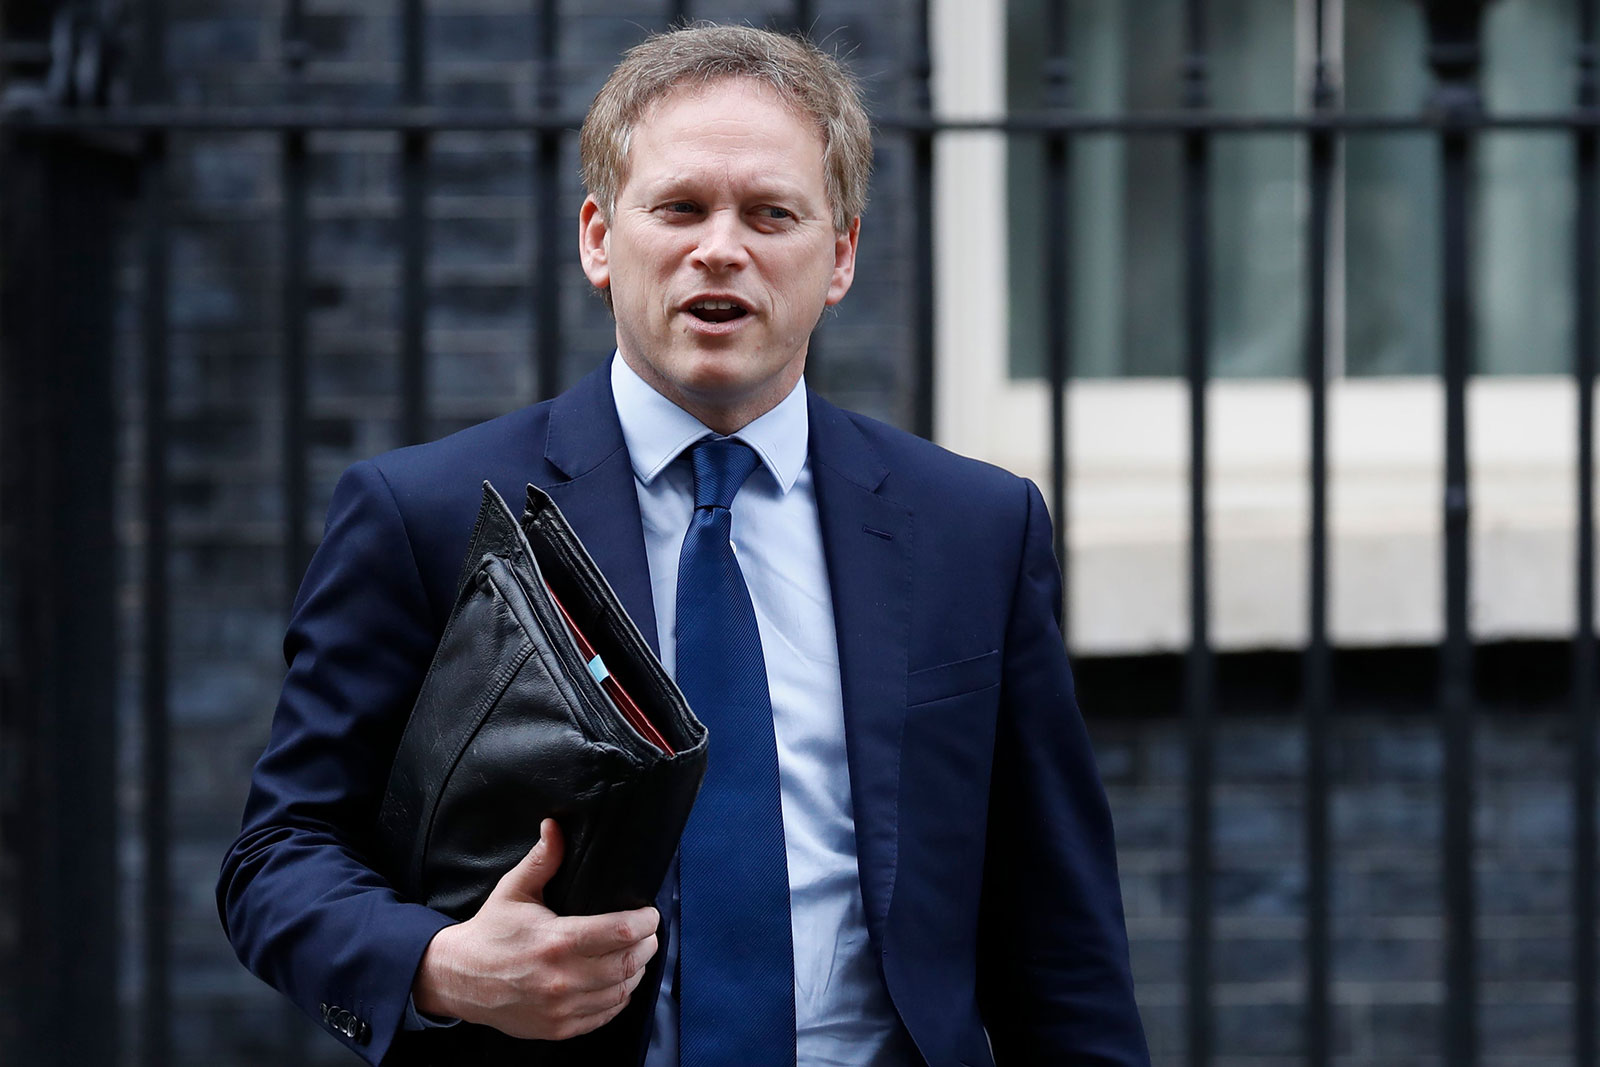 Britain's Transport Secretary Grant Shapps leaves number 10, Downing Street in central London on March 17.